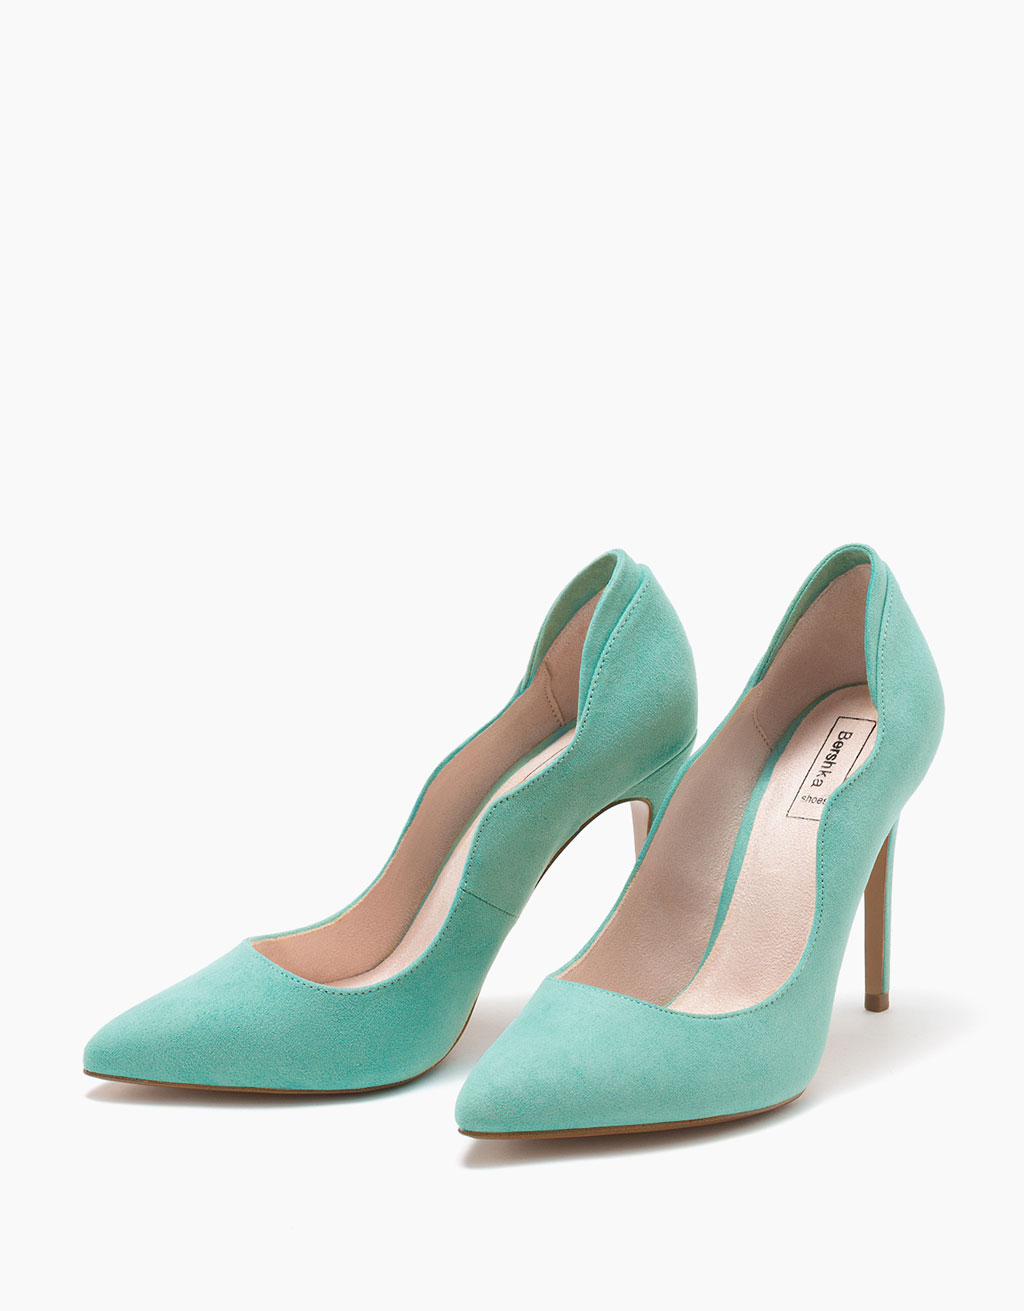 Scalloped stiletto heel shoes